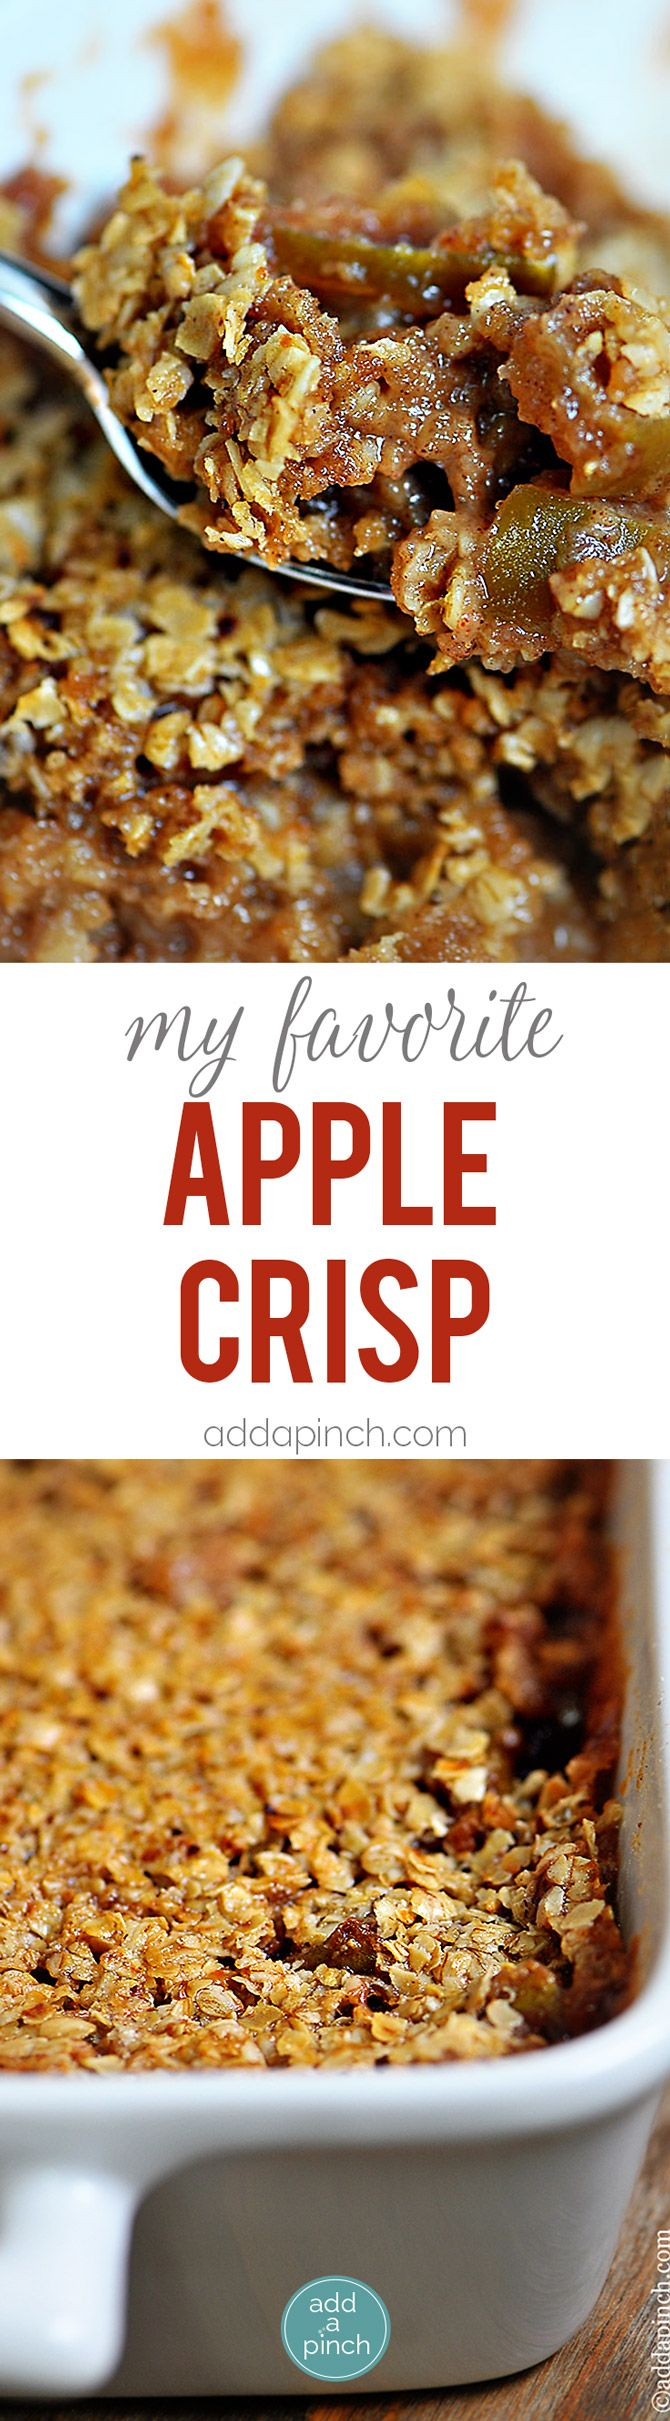 Apple Crisp is the perfect dessert for the apple lover. This apple crisp recipe is made with flavorful apples, cinnamon, and a perfectly crisp topping.